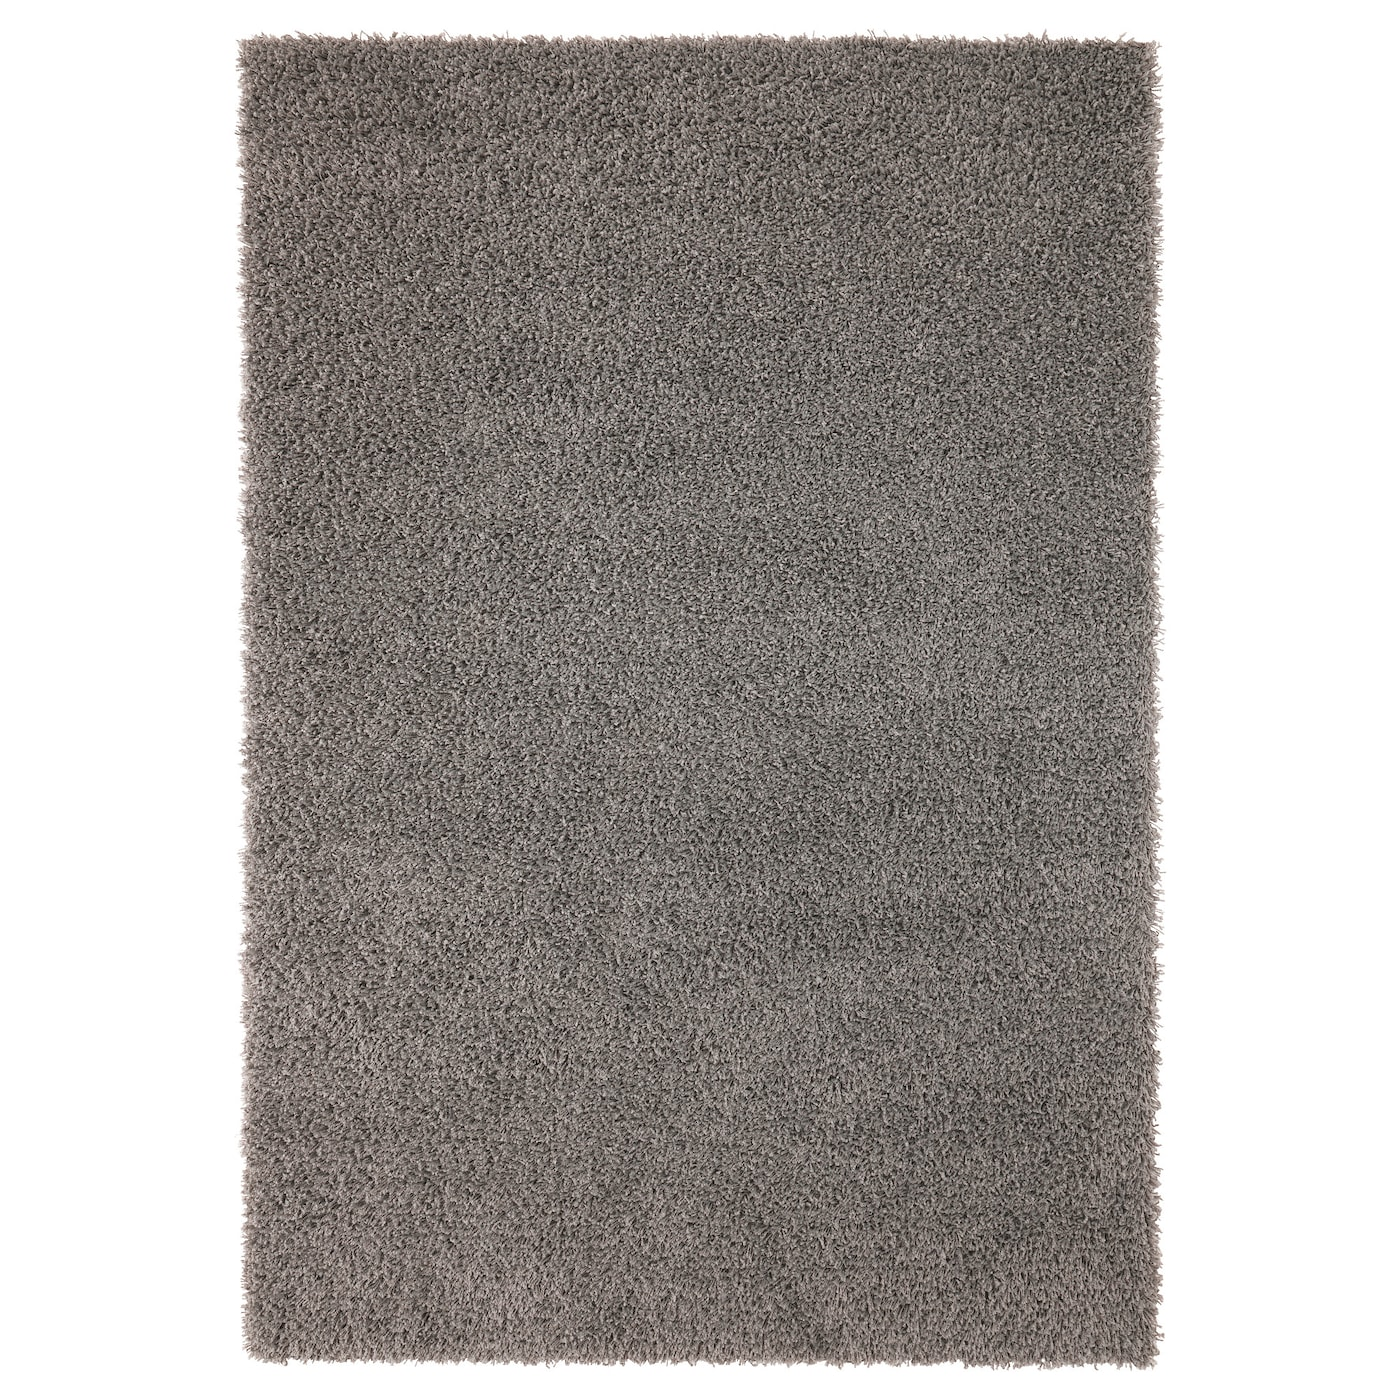 pelos leyko rug medium xali textiles gkri large pile high sanderum psilo en ikea rugs and